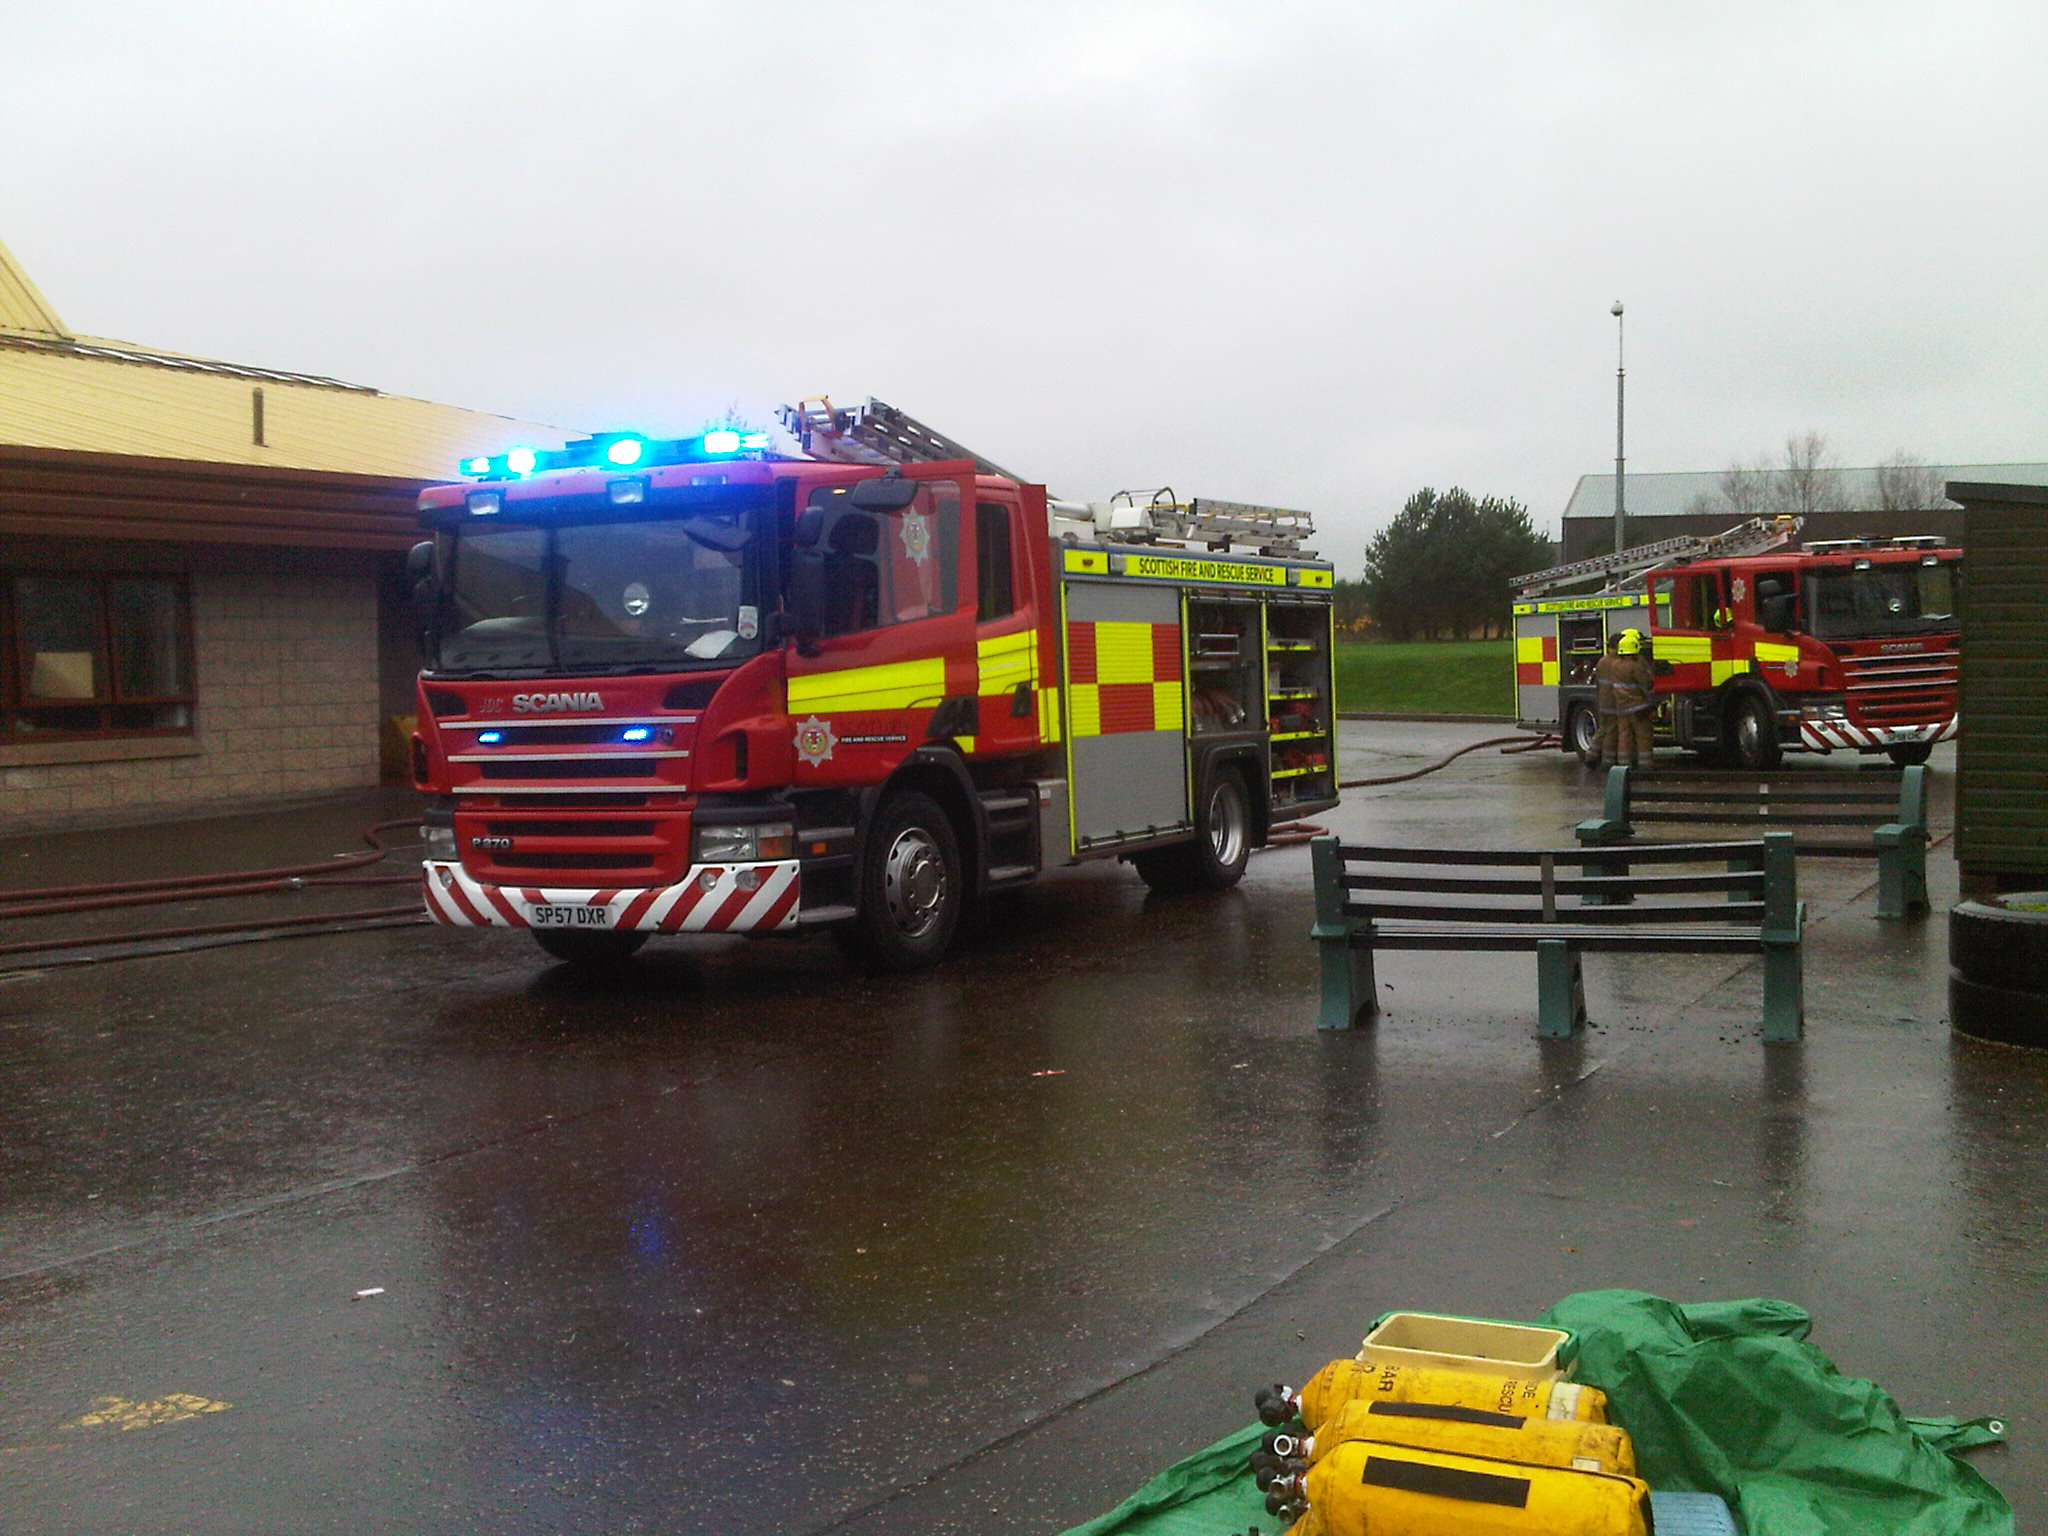 Crews still at scene following Brechin primary school fire